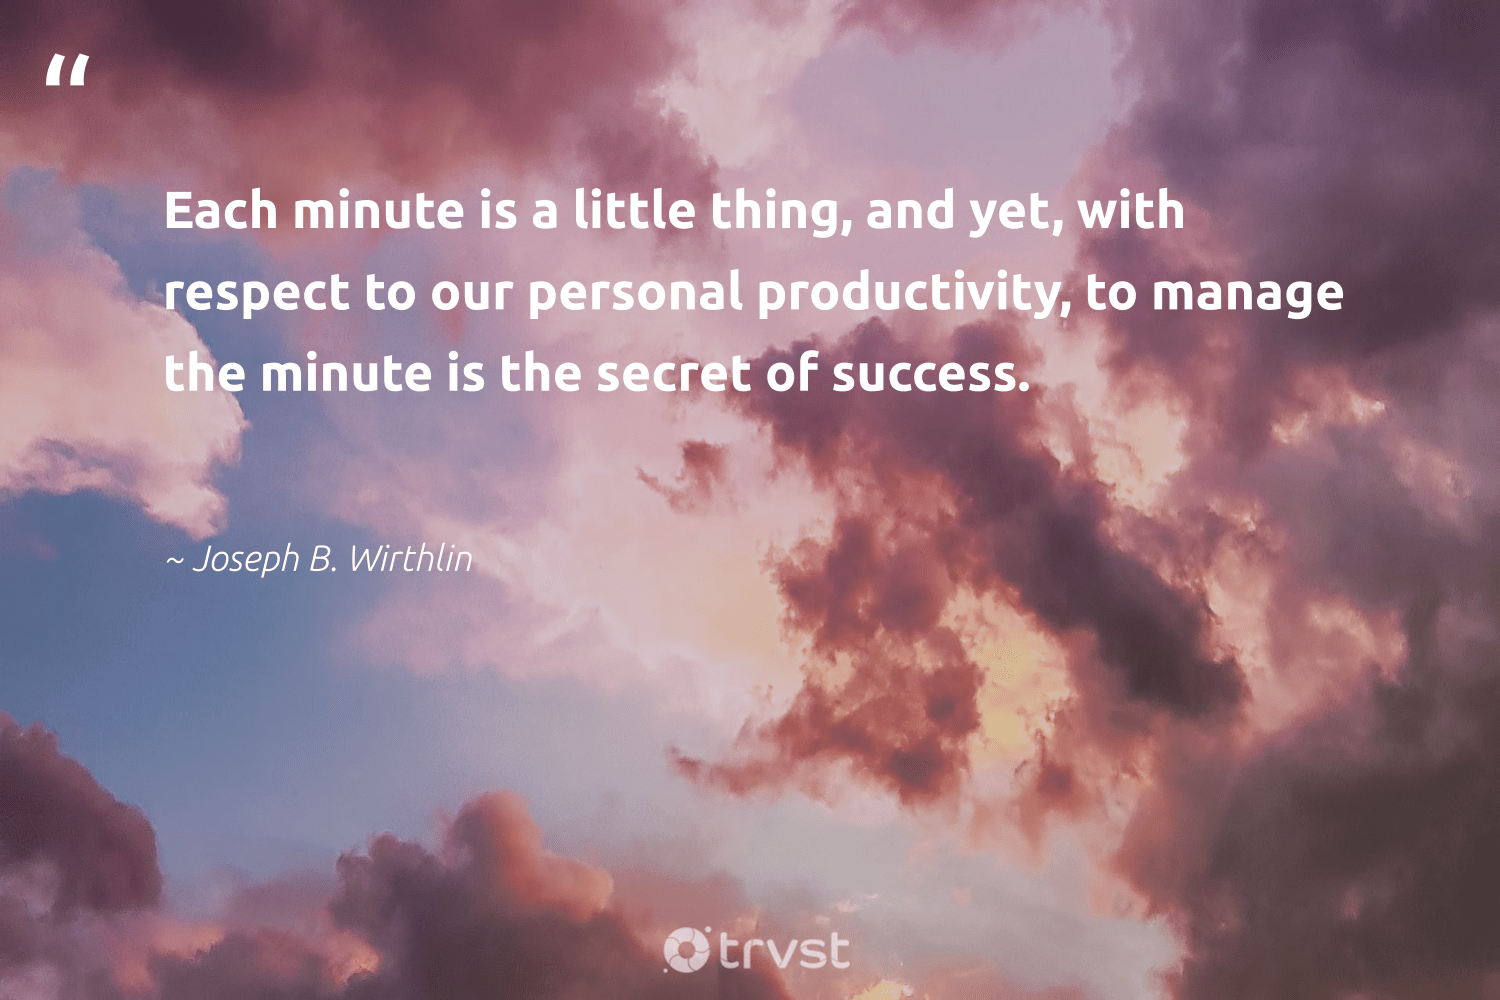 """""""Each minute is a little thing, and yet, with respect to our personal productivity, to manage the minute is the secret of success.""""  - Joseph B. Wirthlin #trvst #quotes #productivity #success #mostwontiwill #timemanagement #develop #begreat #changetheworld #goals #focus #development"""